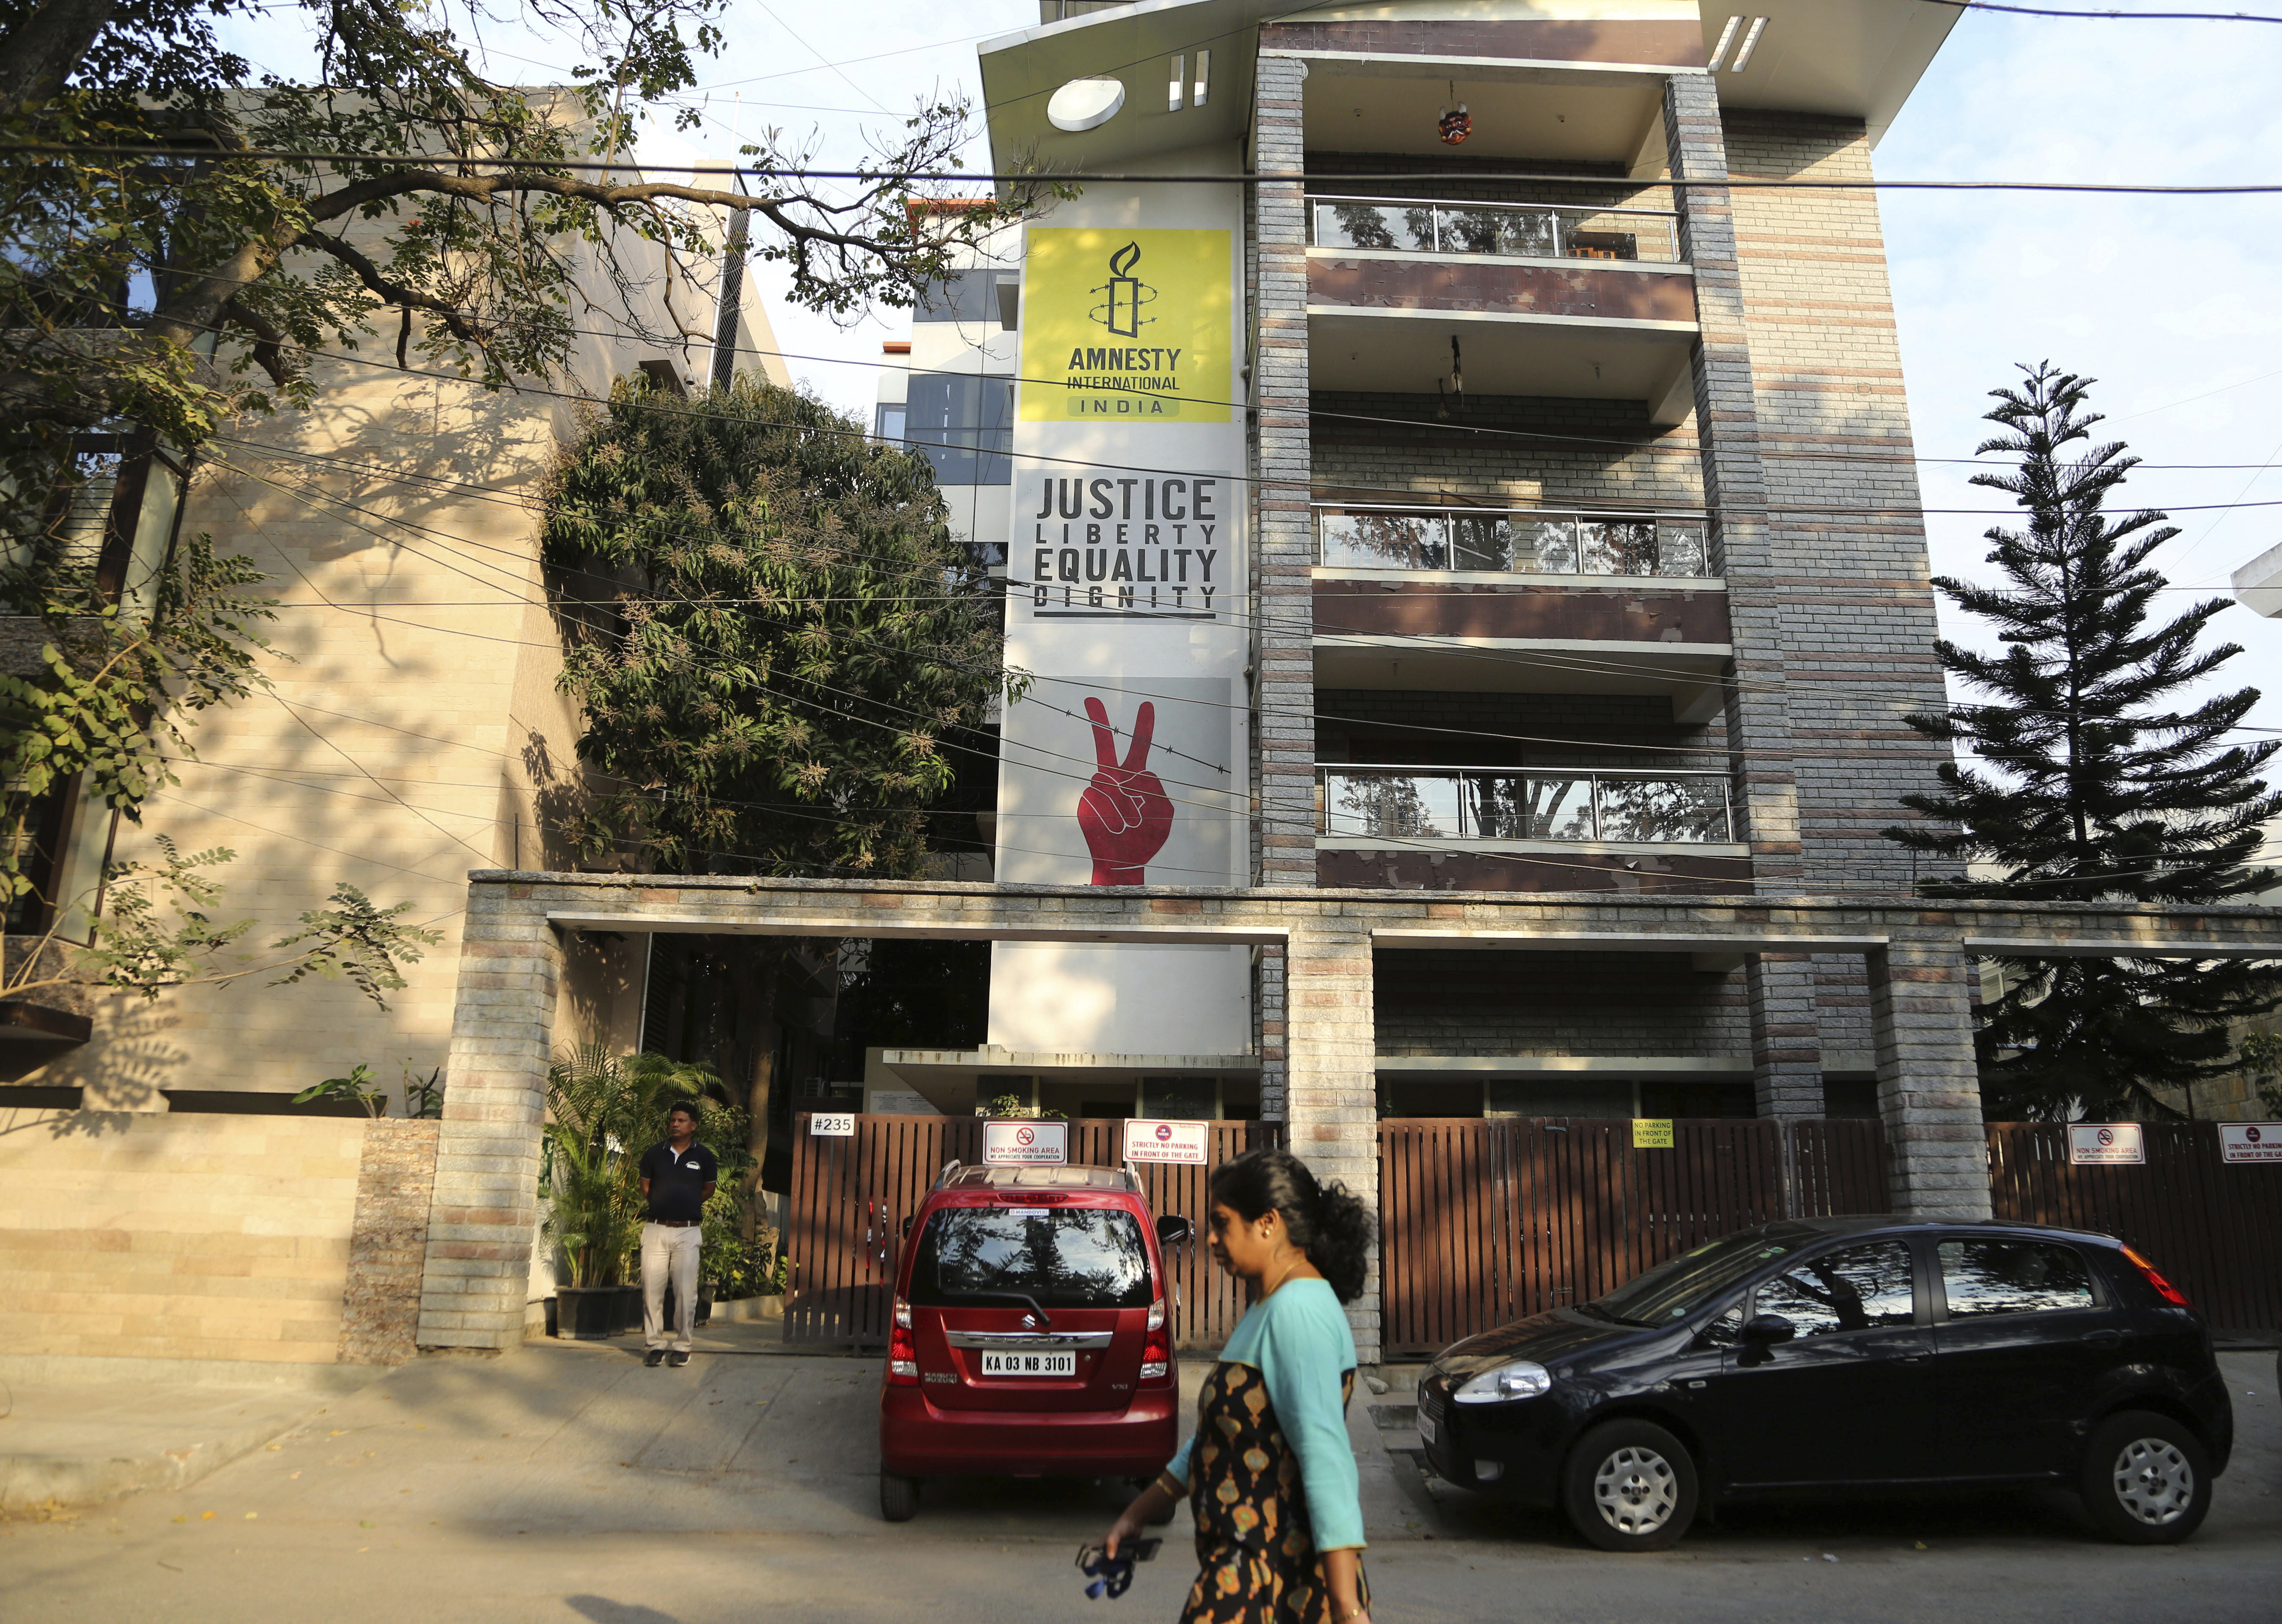 A woman walks past the Amnesty International India headquarters in Bangalore, India on  Feb. 5, 2019.